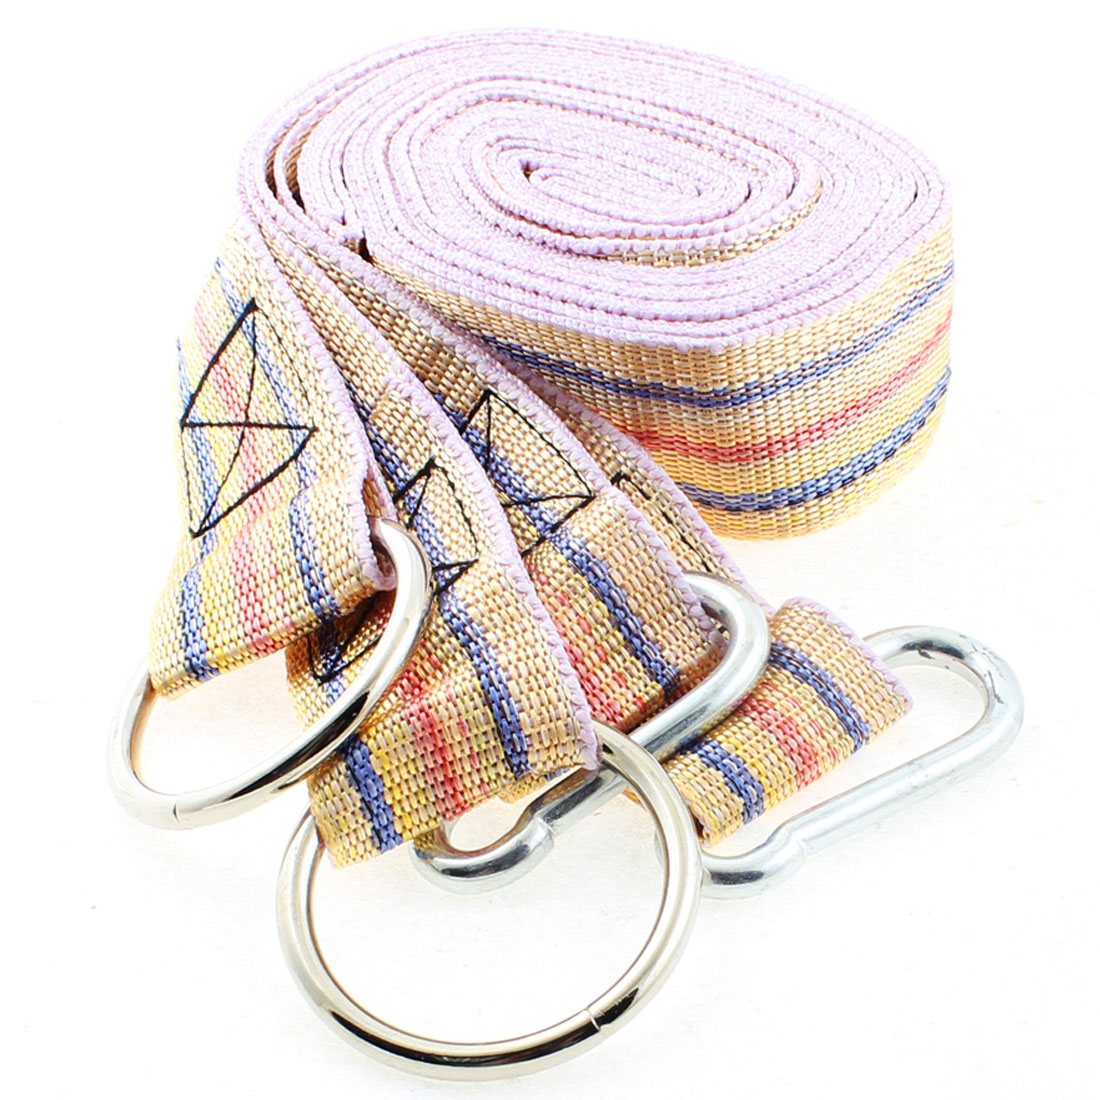 2 Pcs 3.8cm Width 2.5M Long Yellow Nylon Hanging Hammock Strap Safety Belt Band w Carabiner Hook